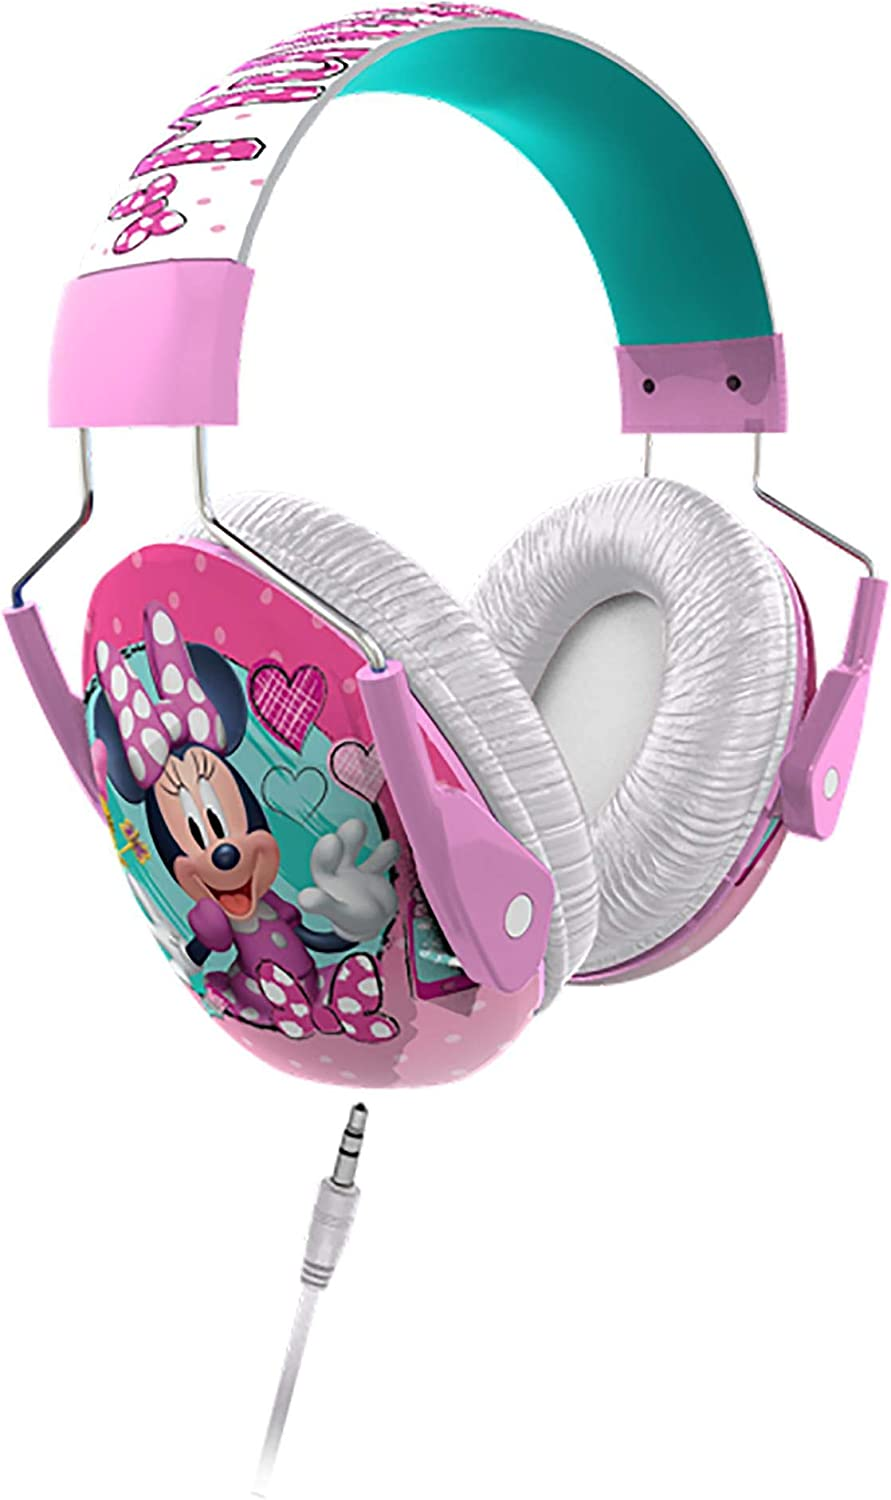 Minnie Mouse Kids Ear Protectors Earmuffs Toddler Ear Protection + Headphones 2 in 1 Noise Reduction and Headphones for Kids Ultra Lightweight Adjustable Safe Sound Great for Concerts Shows and More